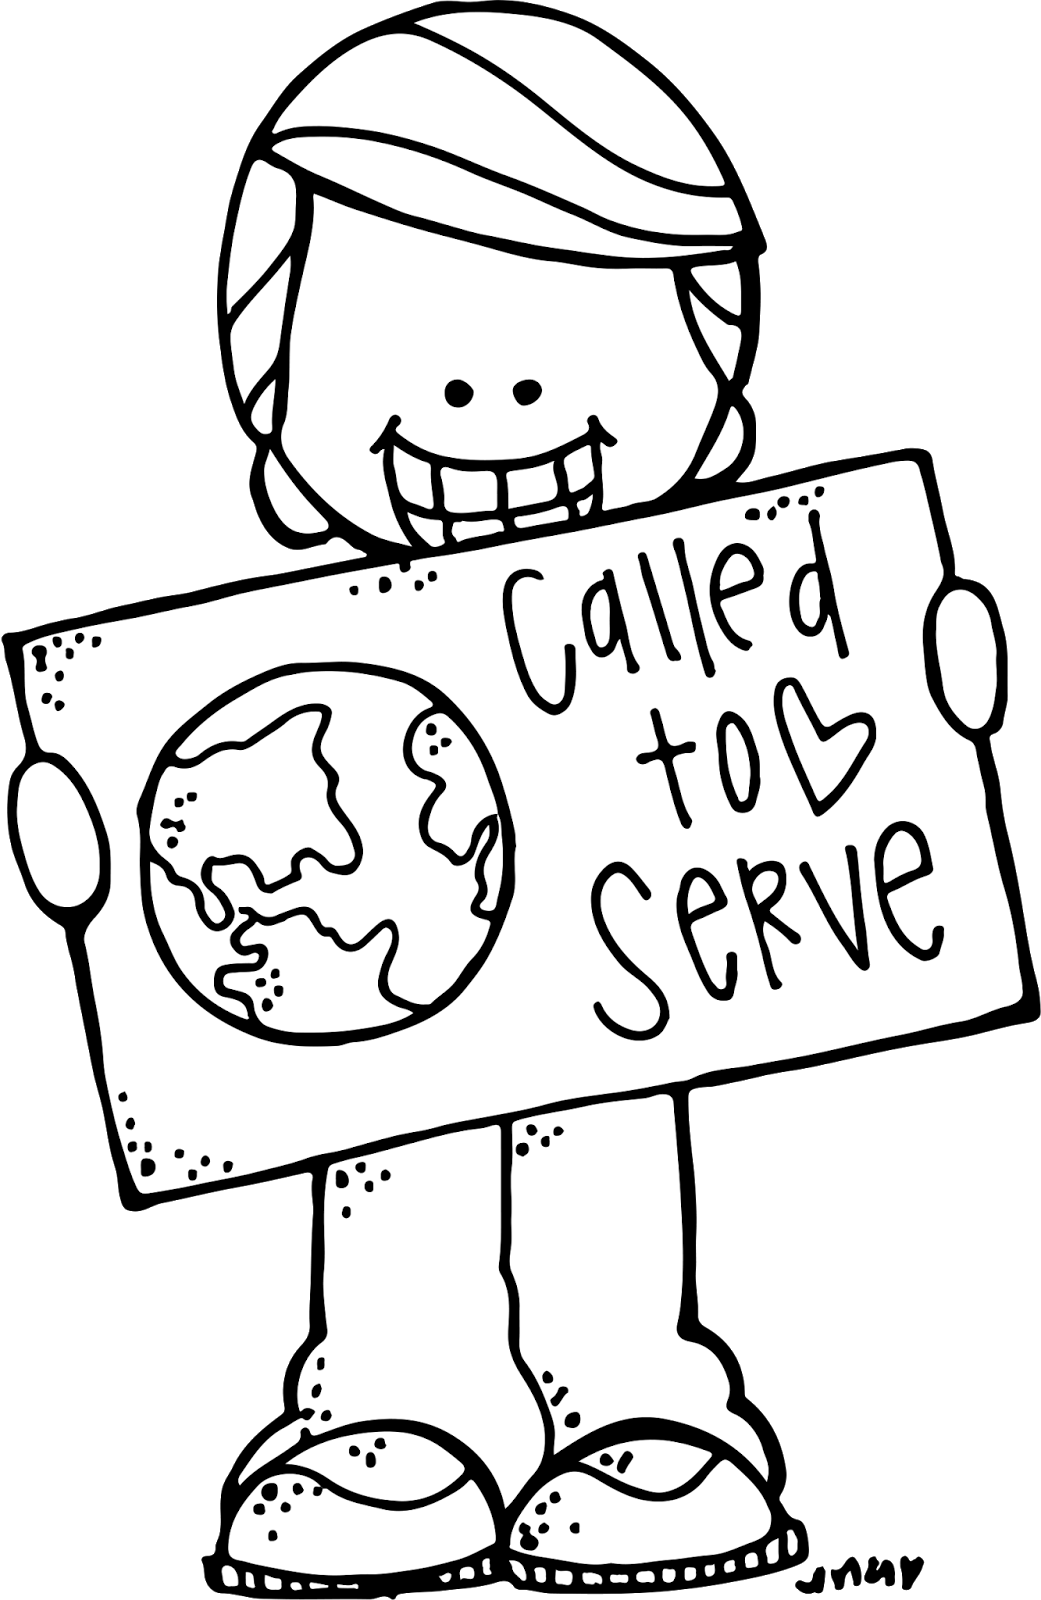 Melonheadz lds illustrating general. Missions clipart called to serve